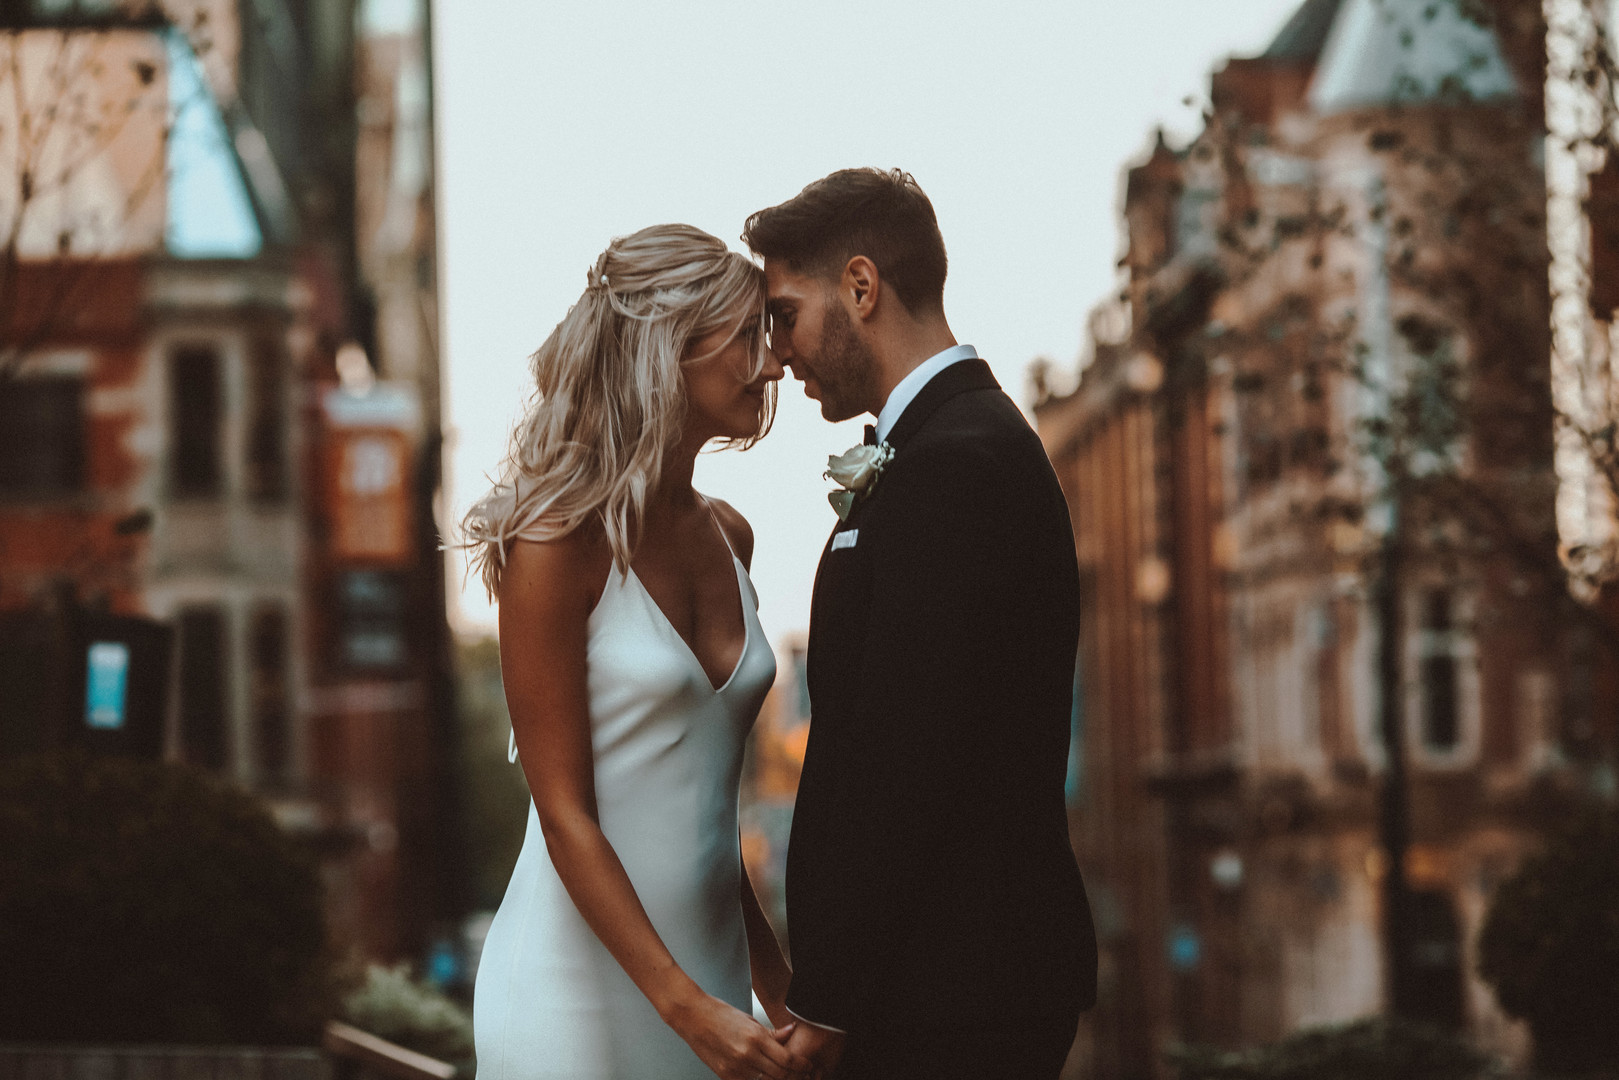 How to look good in your wedding photos